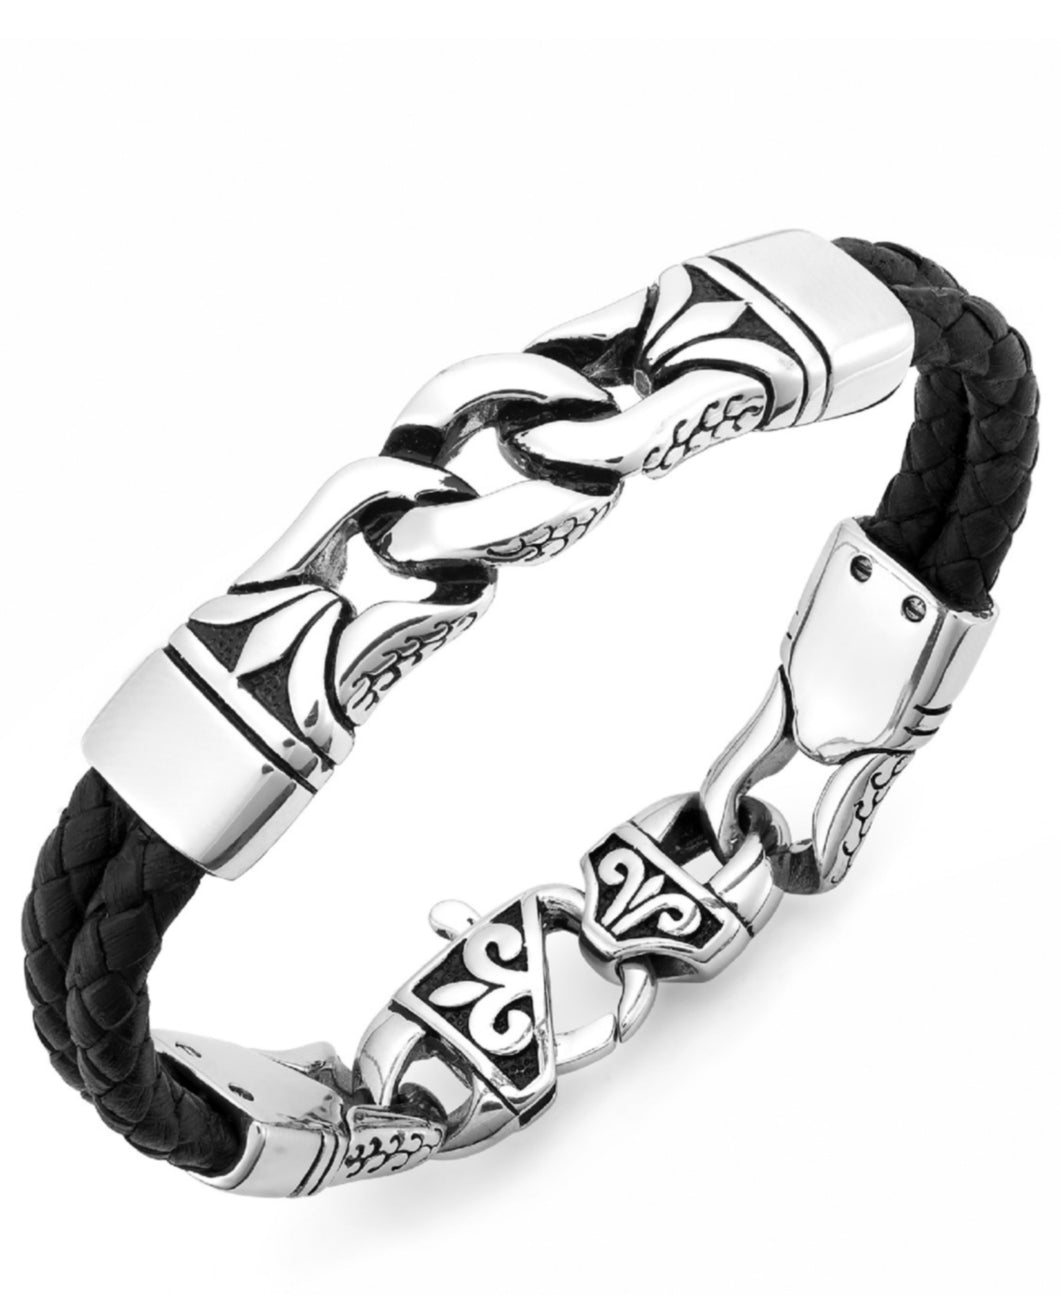 Men's Stainless Steel Link and Braided Leather Bracelet